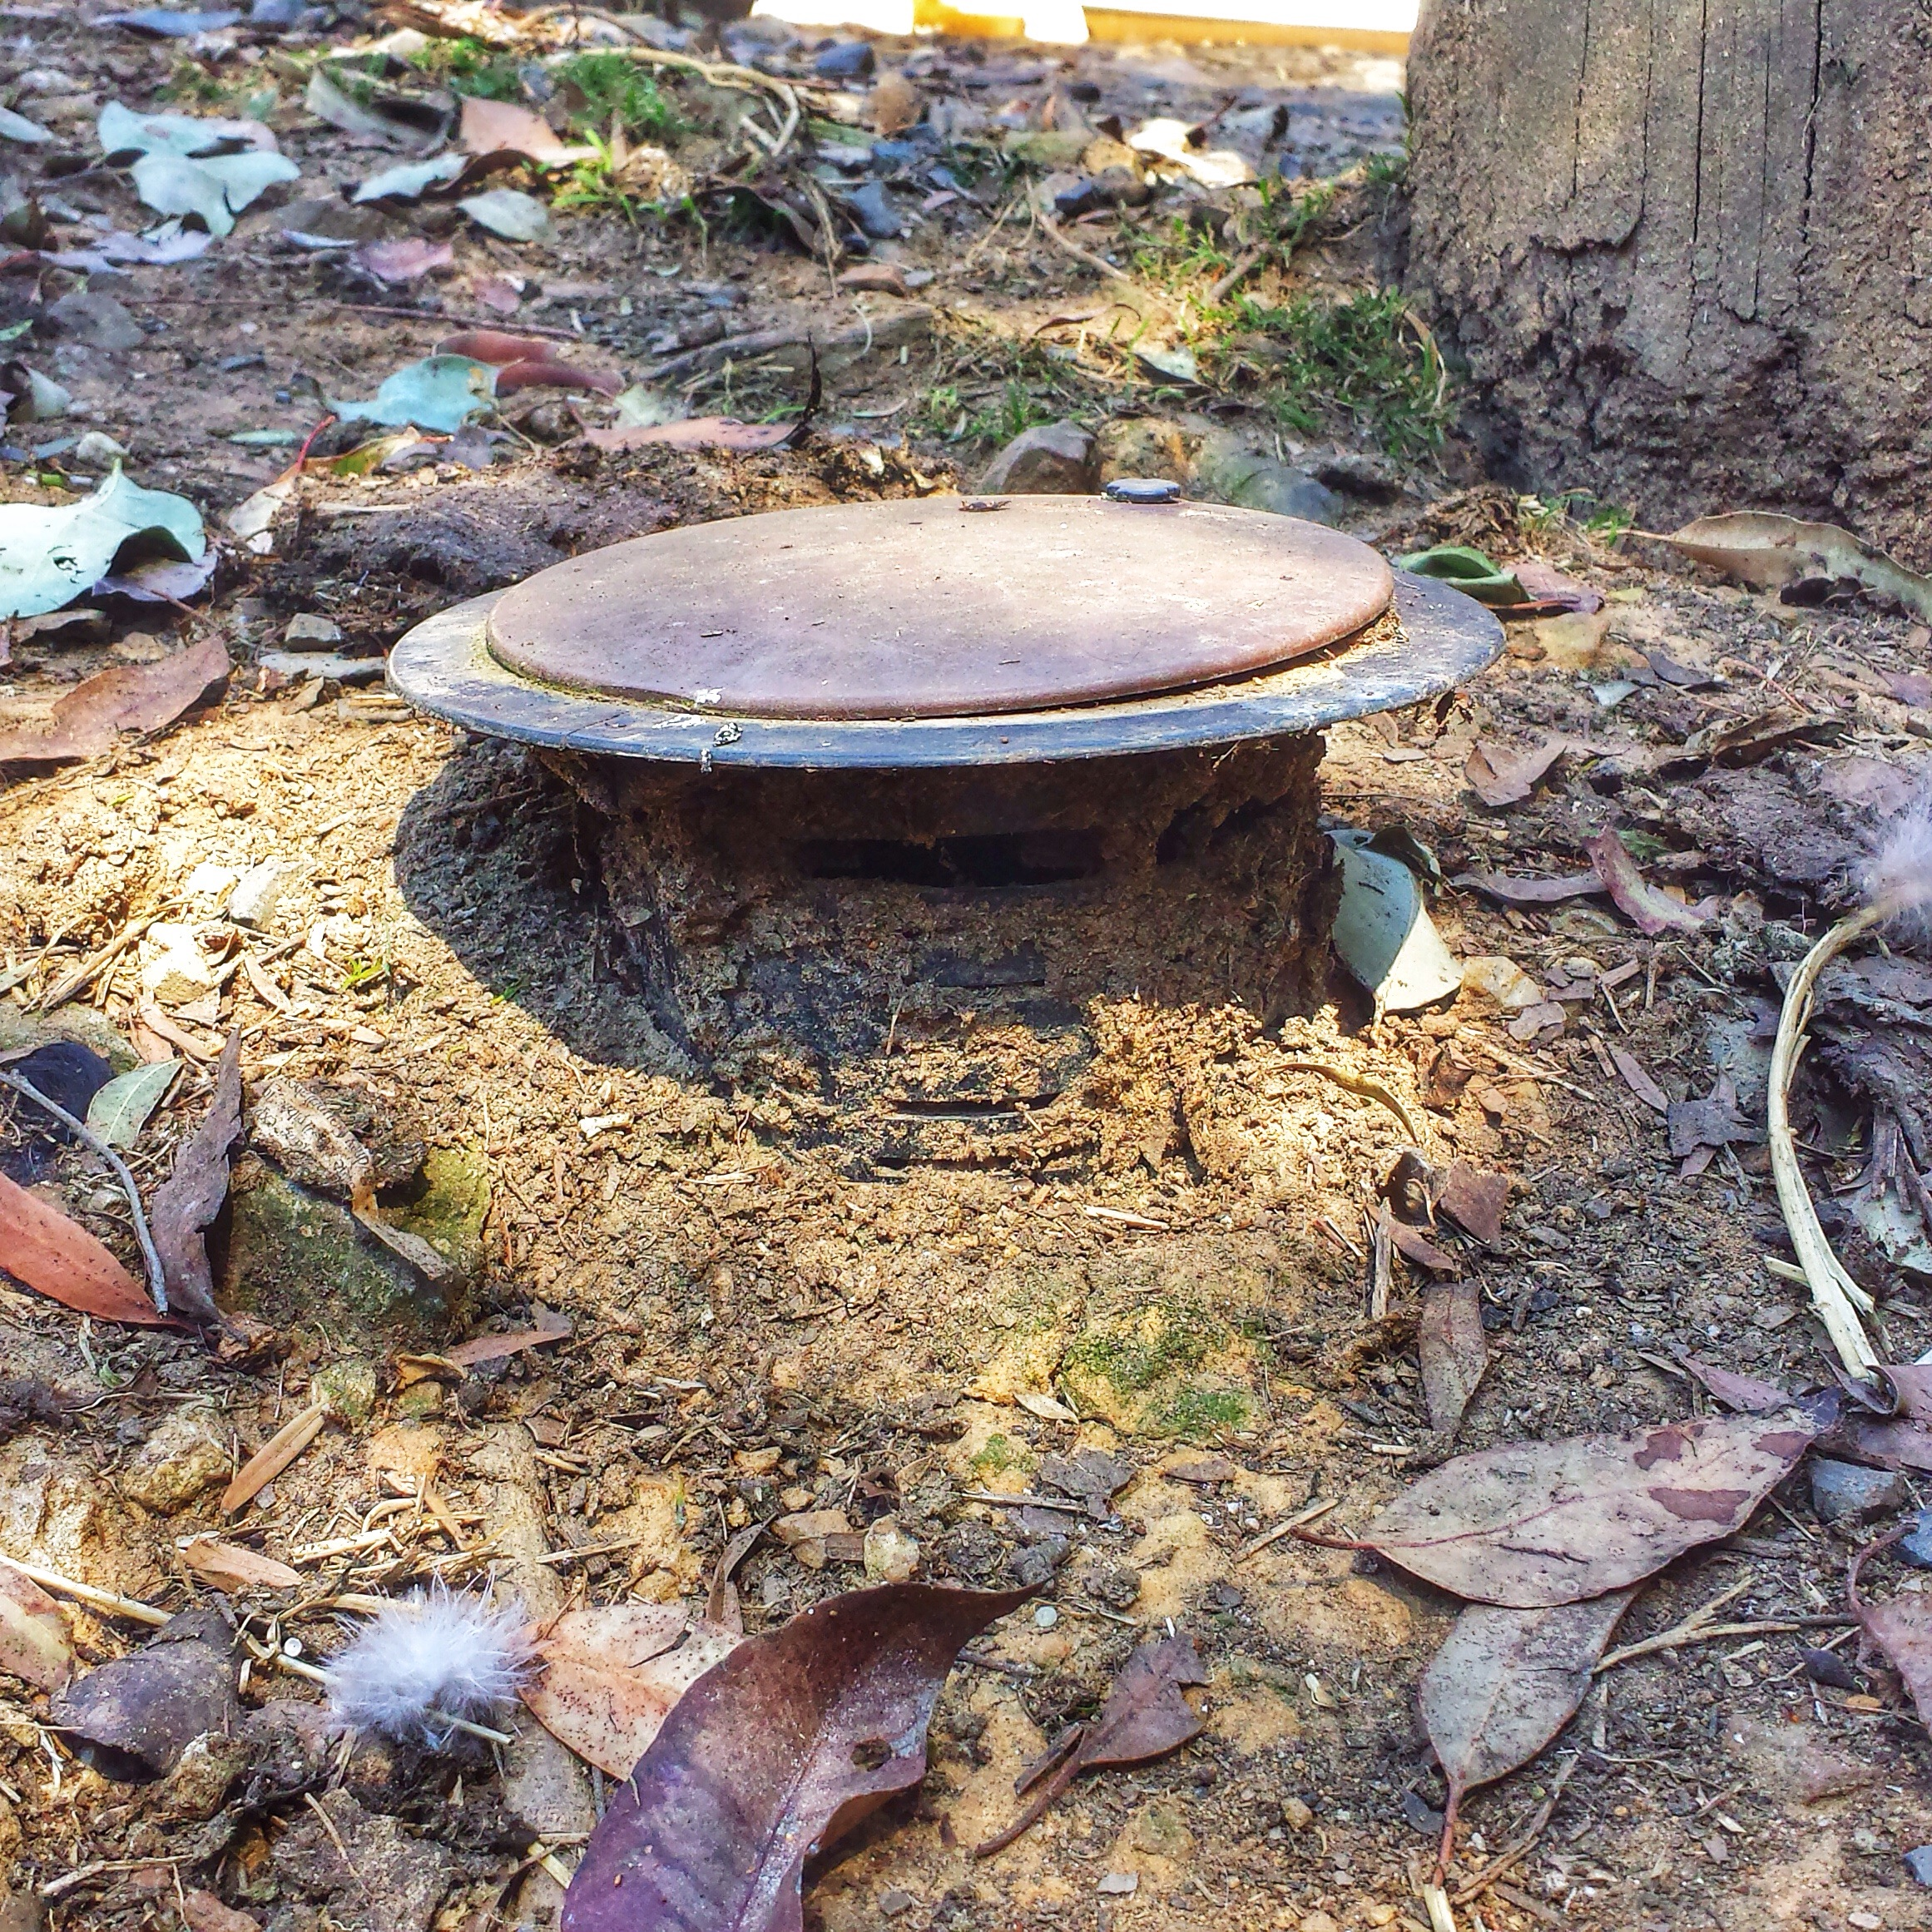 This bait station is far from effective as it is protruding significantly, the top should be flush with ground level.